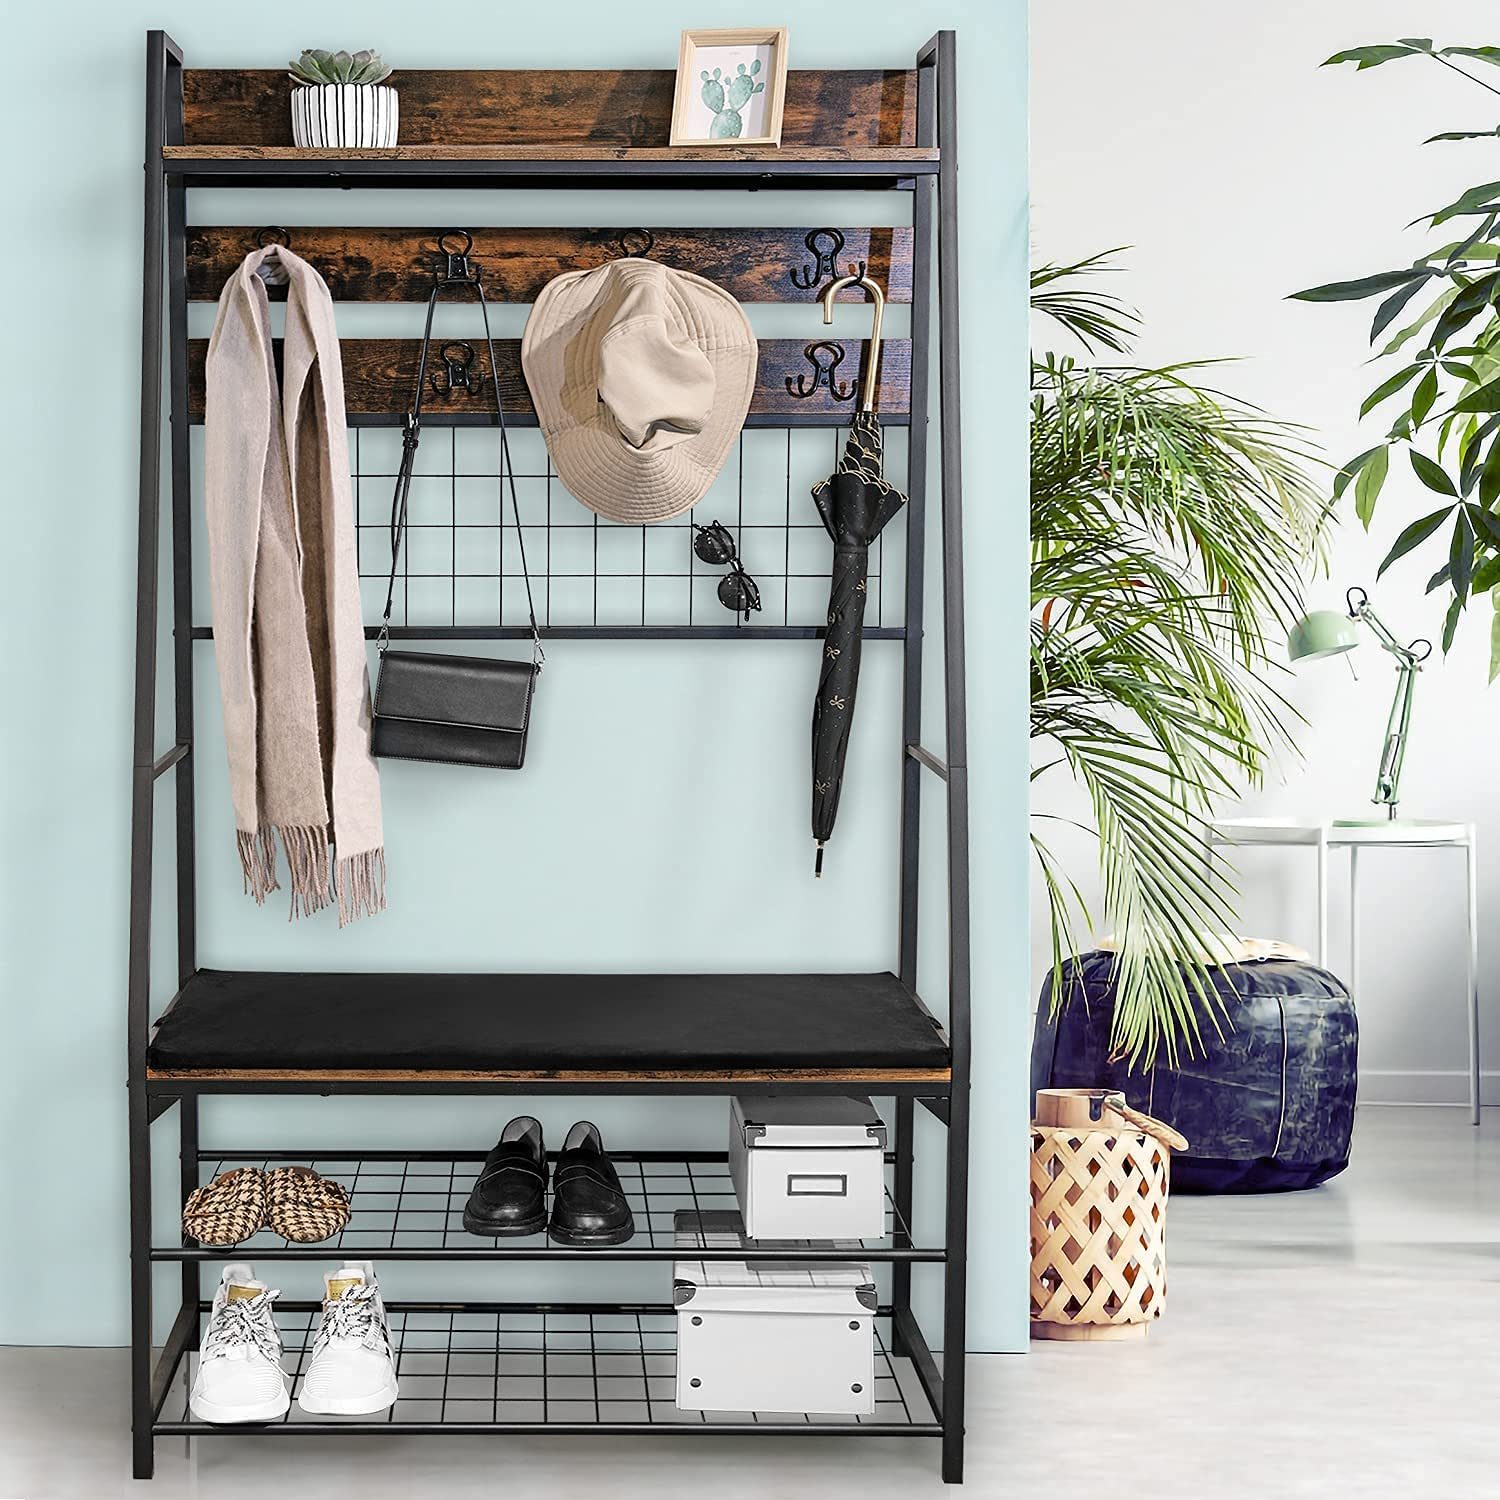 Entryway Hall Trees, E&D FURNITURE Entryway Bench with Coat Rack with Shoe Rack Entryway Home Furniture Coat Shoe Rack Bench 5-in-1 Clothes Rack Mudroom Bench with Storage and Hooks